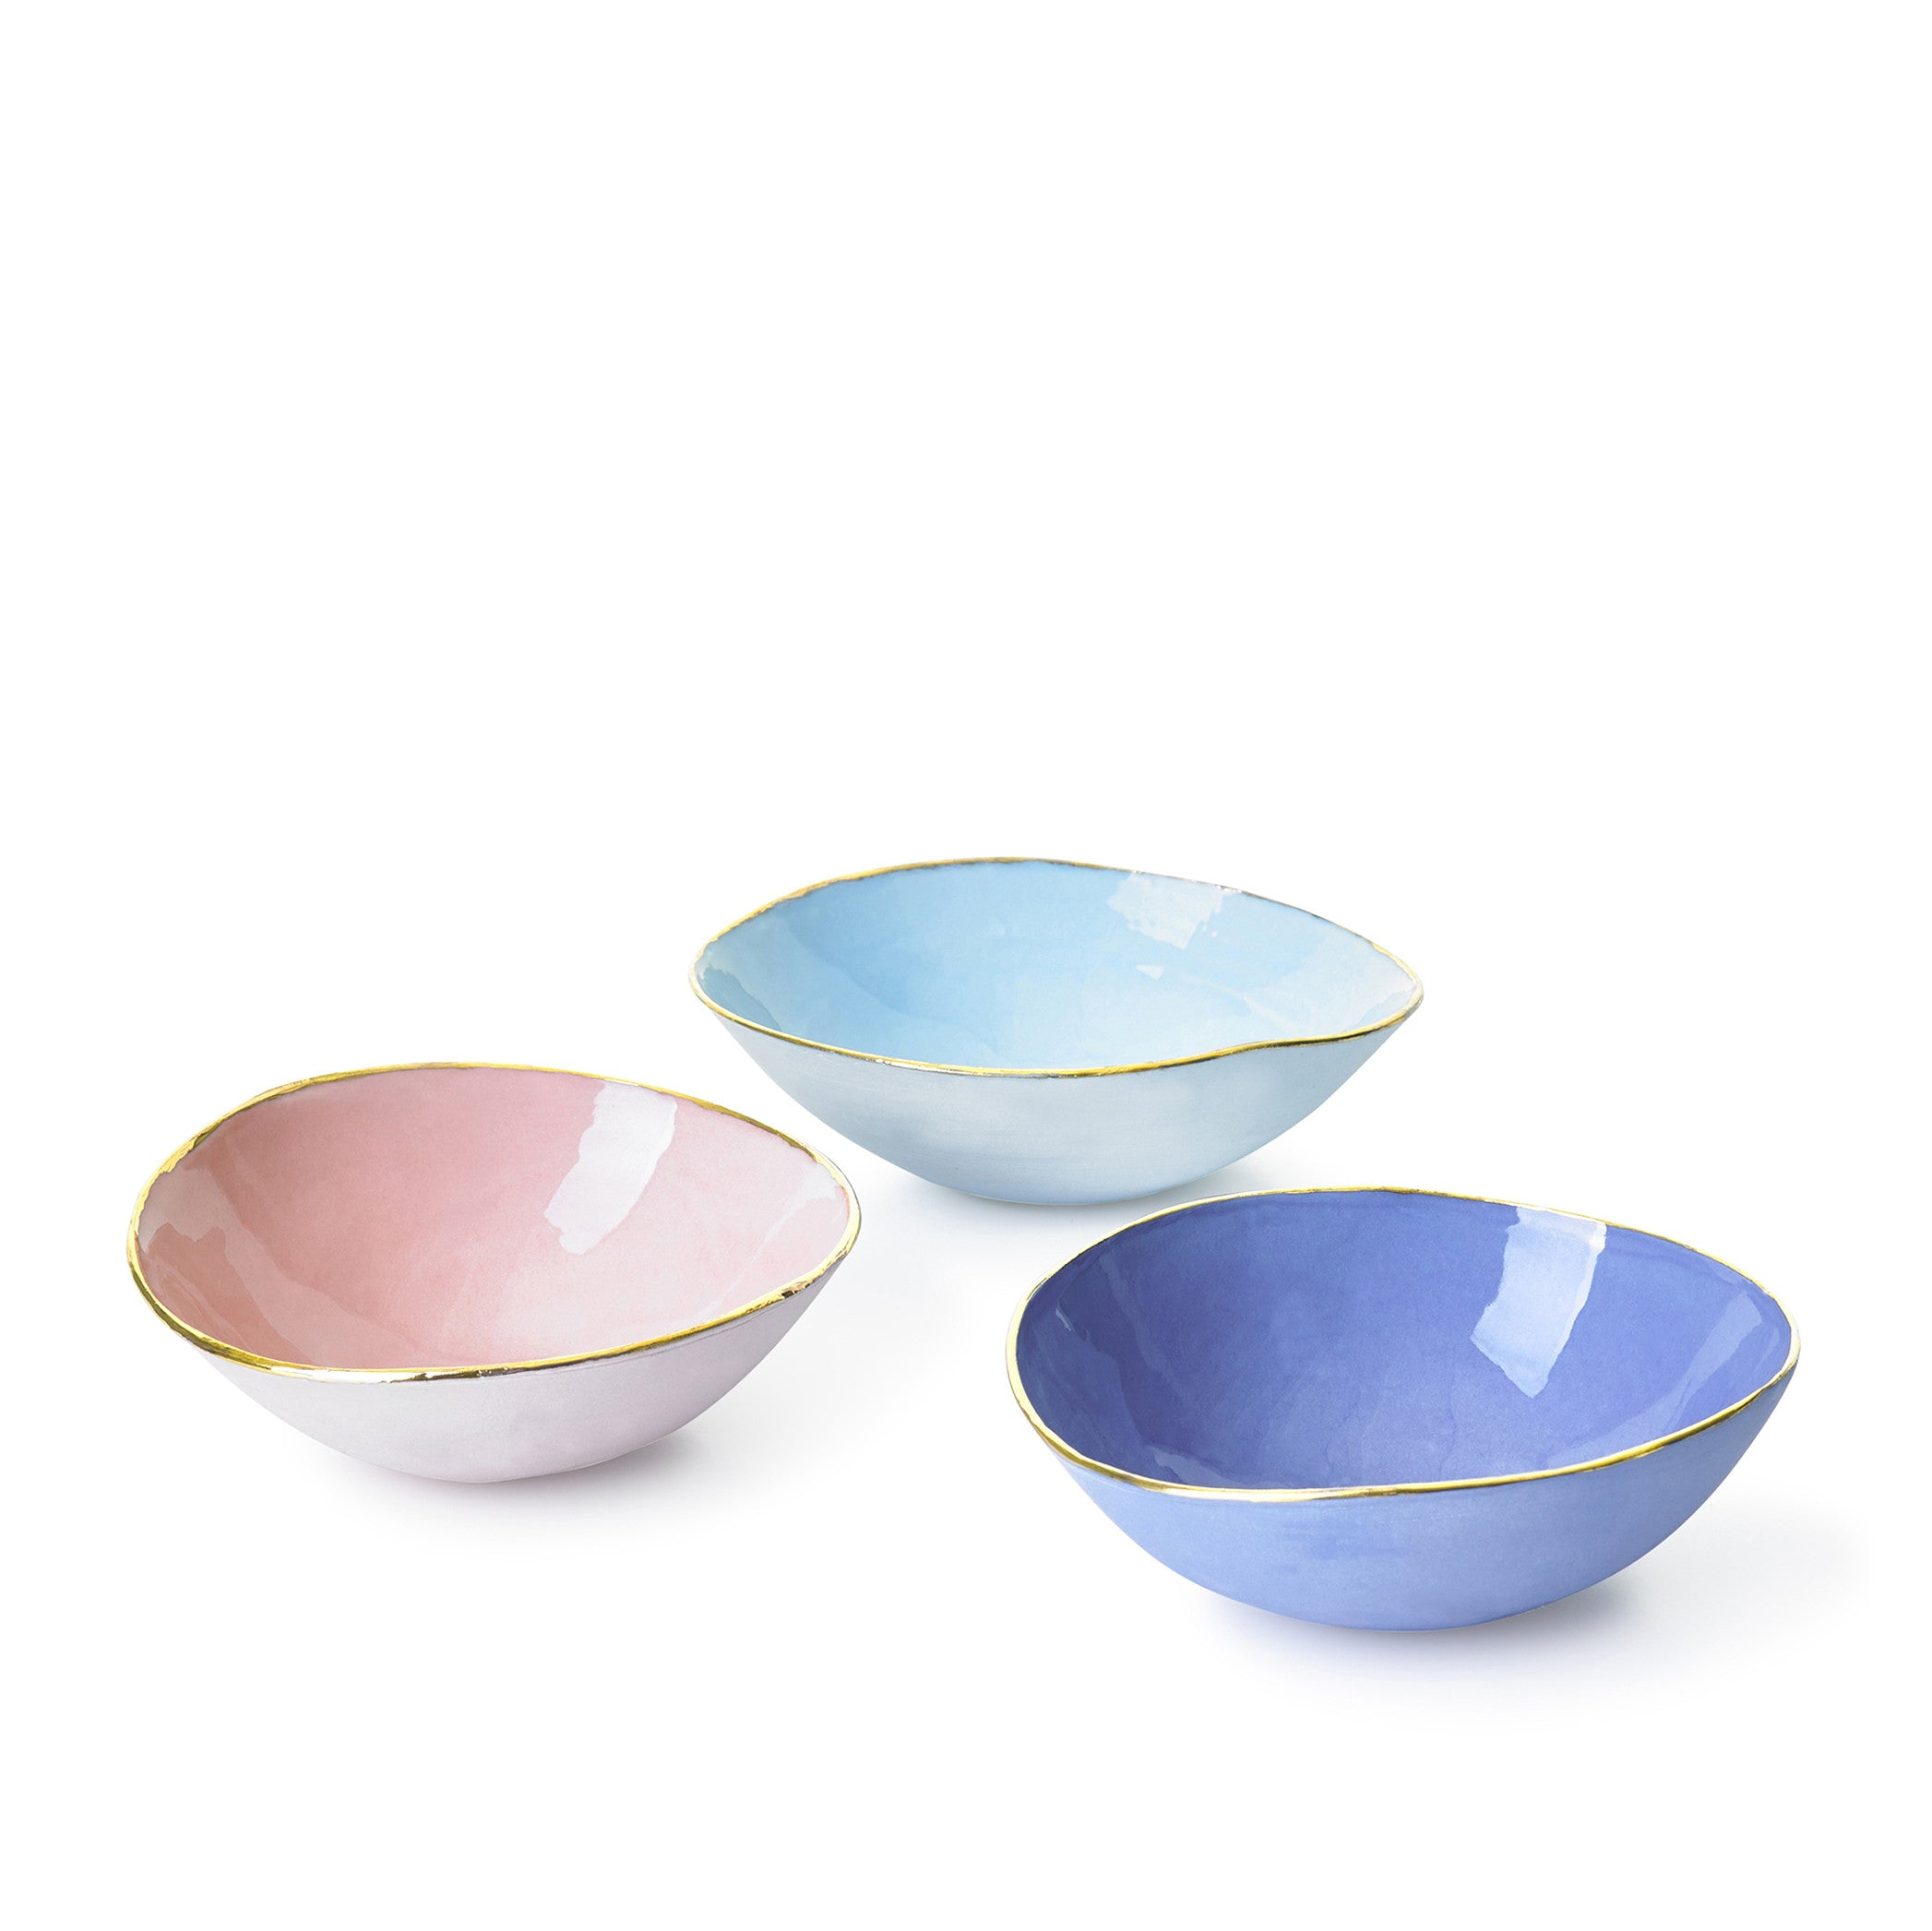 Full Painted Light Blue Ceramic Bowl with Gold Rim, 10cm